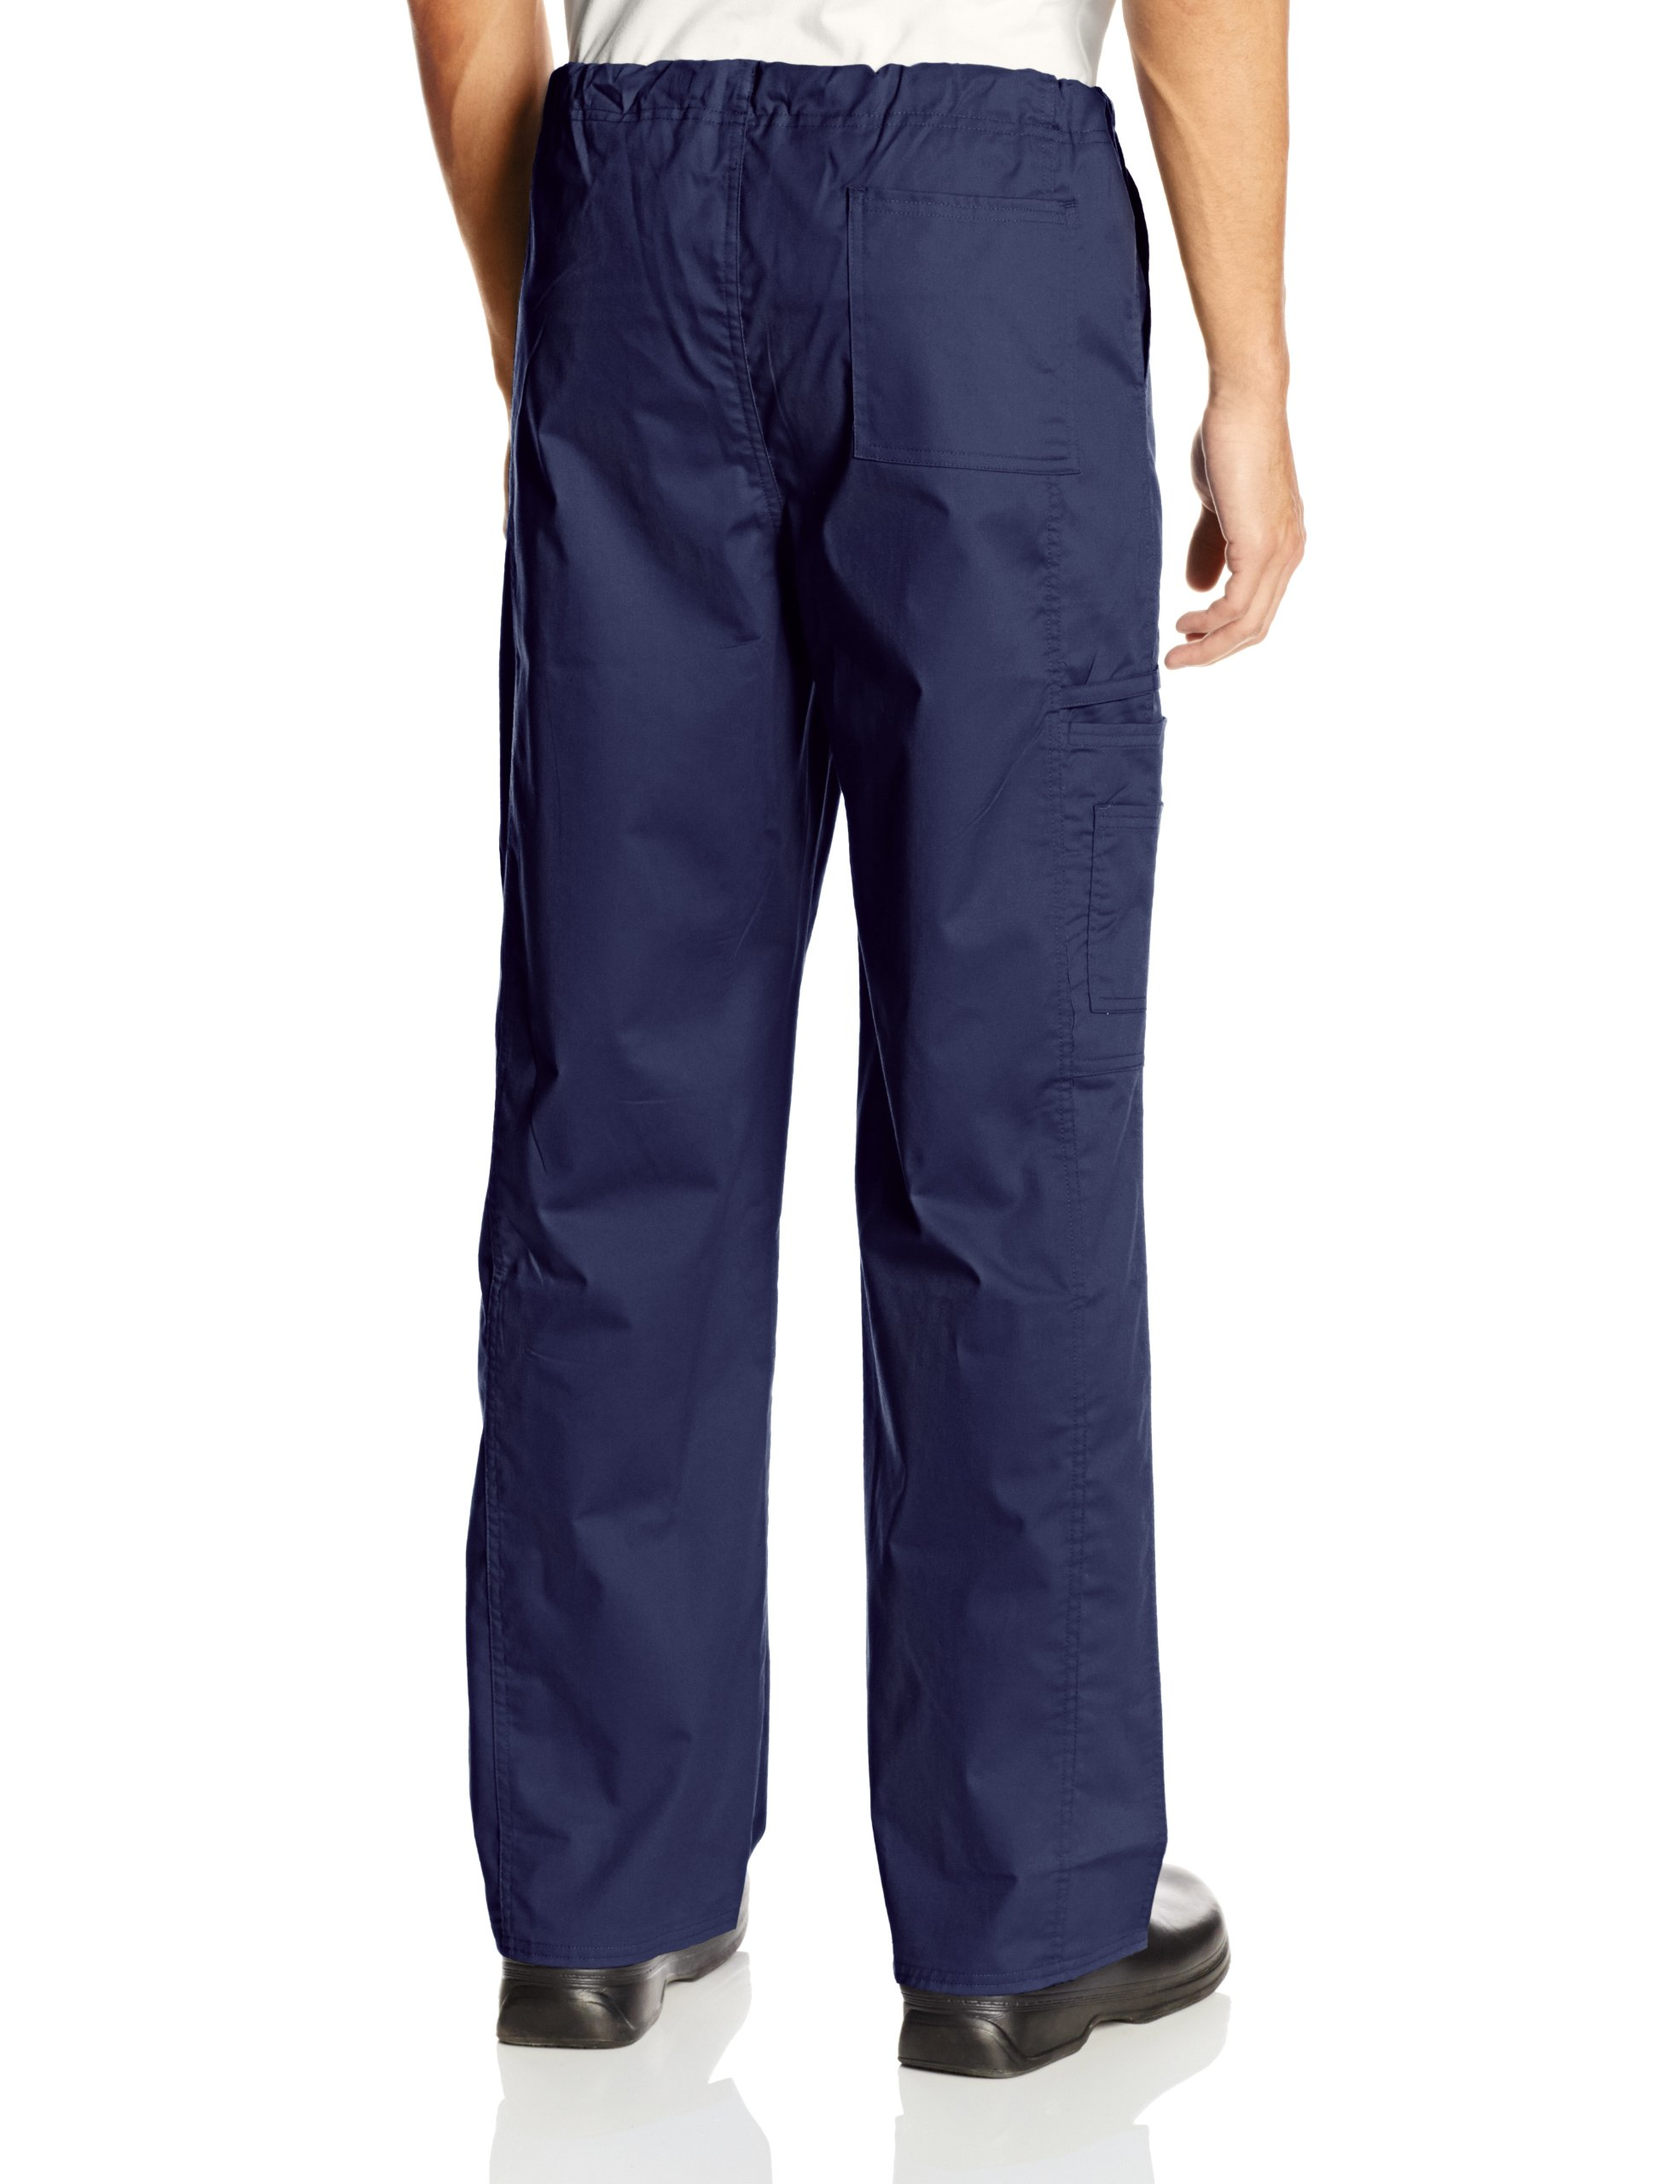 Cherokee Workwear Scrubs Unisex Stretch Cargo Pant, Navy, Small by Cherokee (Image #2)